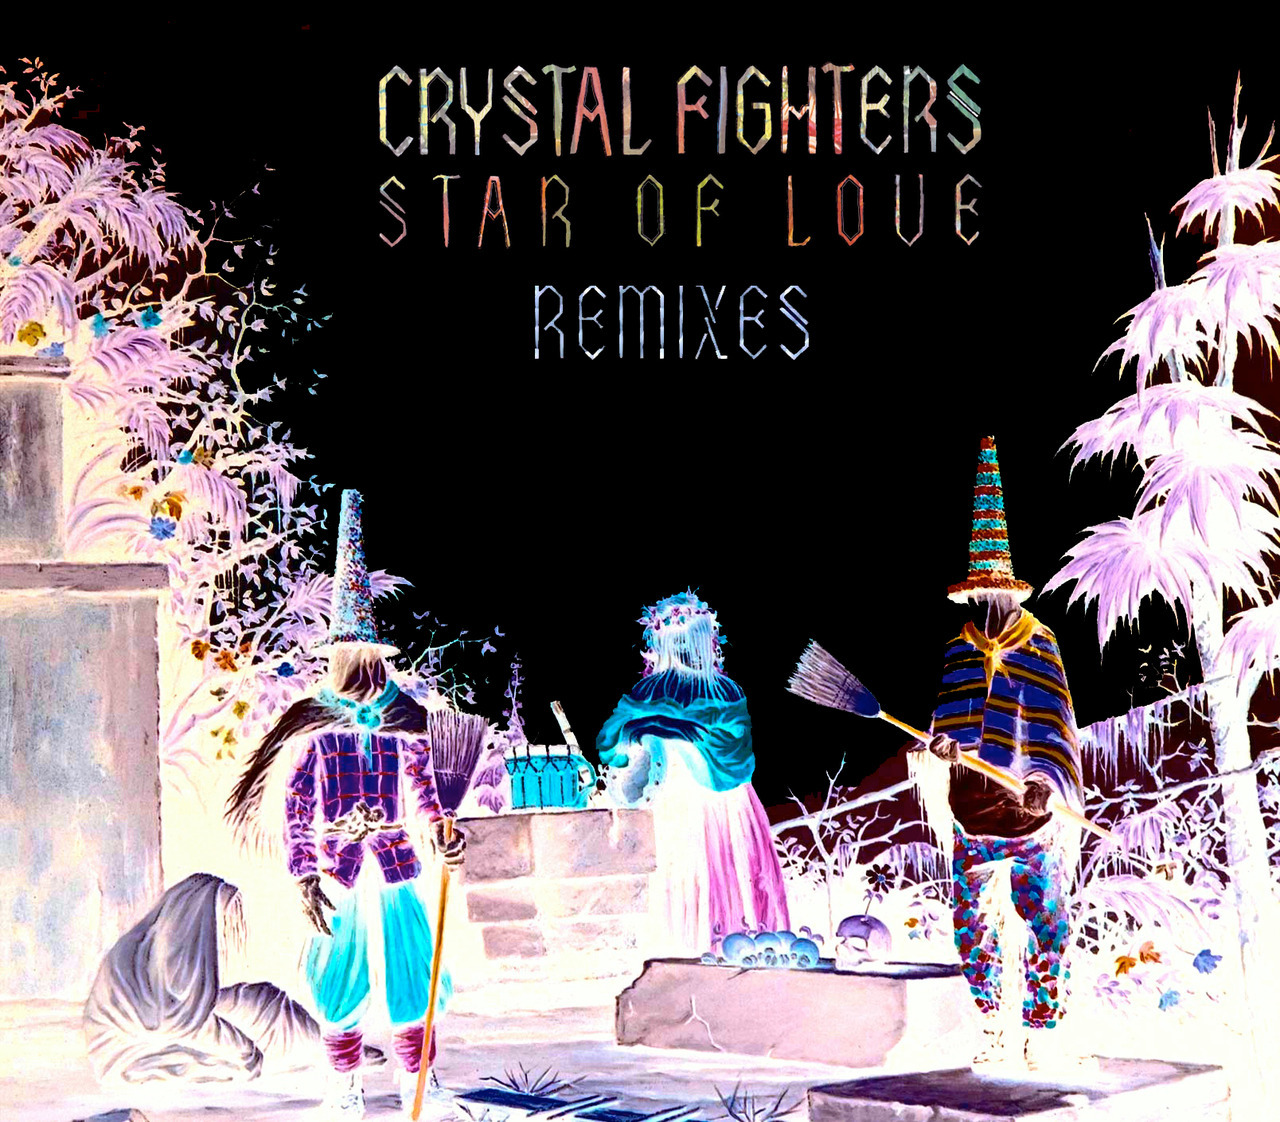 "?¿?¿ WHAT'S HOT IN THE NEW CRYSTAL FIGHTERS'S STAR OF LOVE REMIX ALBUM ?¿?¿WELL DON'T MISS THE TRIBAL MOOMBAH OF Totally Enormous Extinct Dinosaurs ON ""XTATIC TRUTH"" , THE SICKEST BASS MUSIC OF DisclosureON ""AT HOME"".BUT OUR FAVOURITE IS THE ONE BY Lapalux ON PLAGE, WHAT AN INCREDIBLE PRODUCER. THIS IS NOT A SONG IS A NEW WORLD ☮"